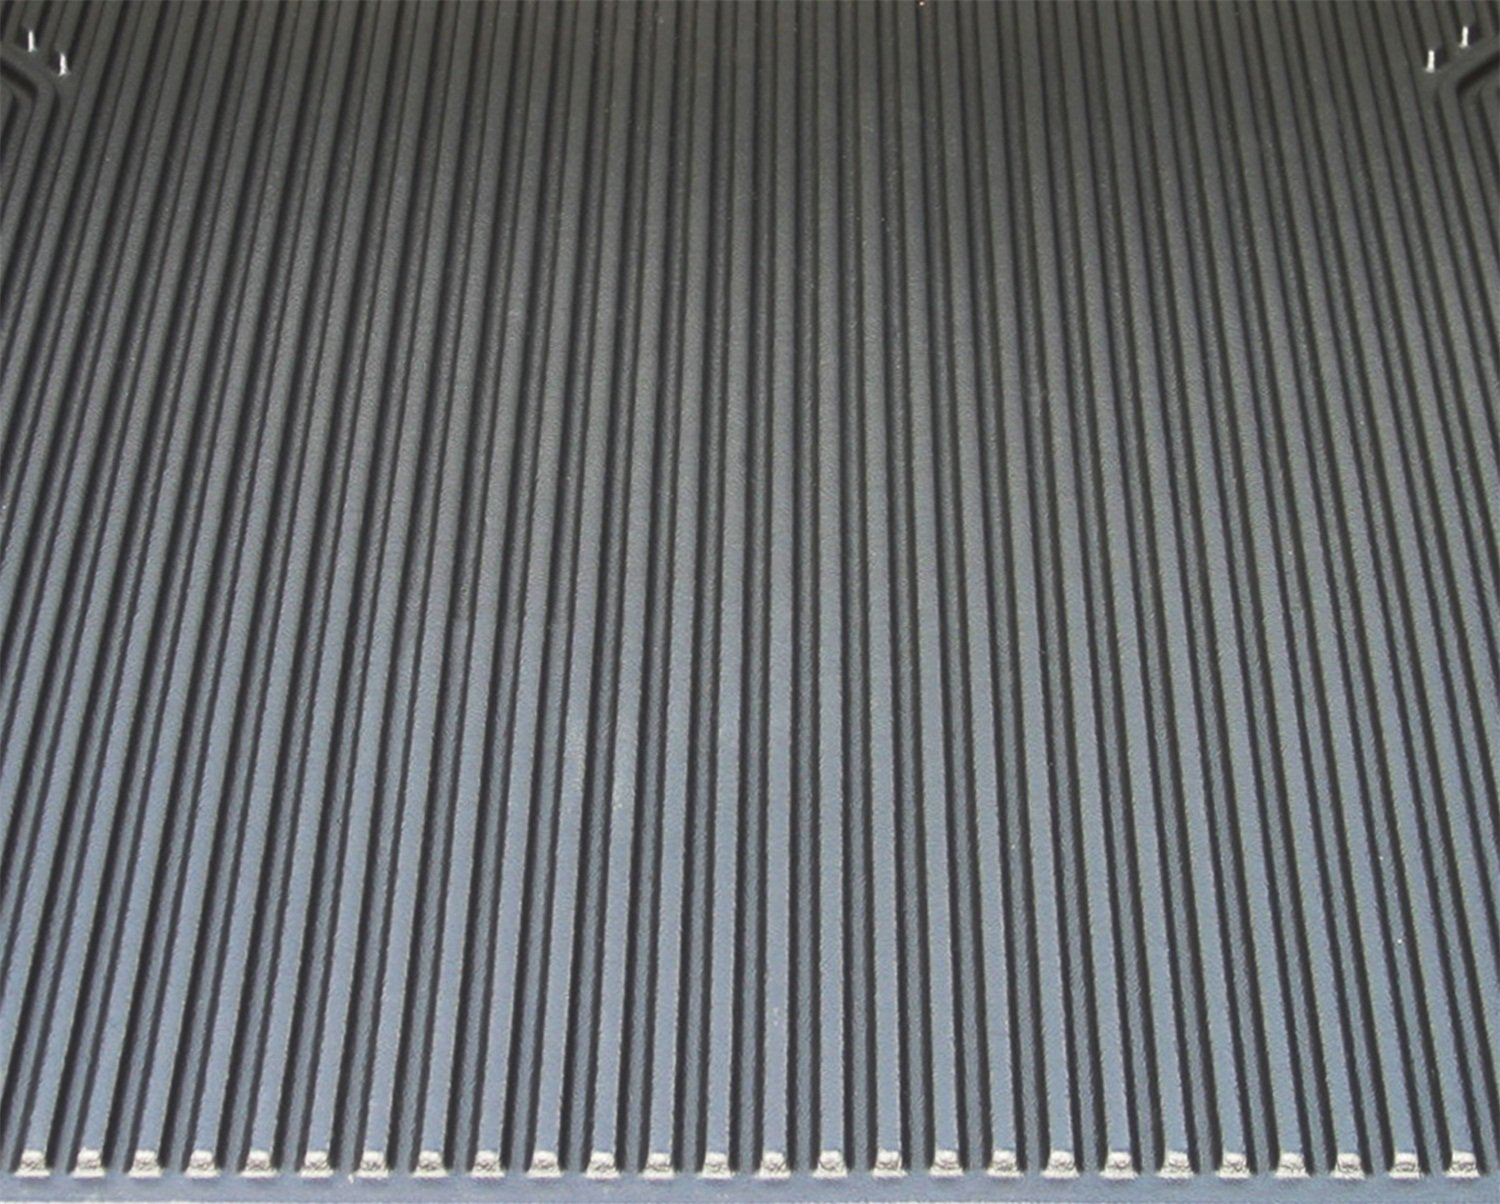 Rugged Liner C65U14 Under-Rail Bedliner